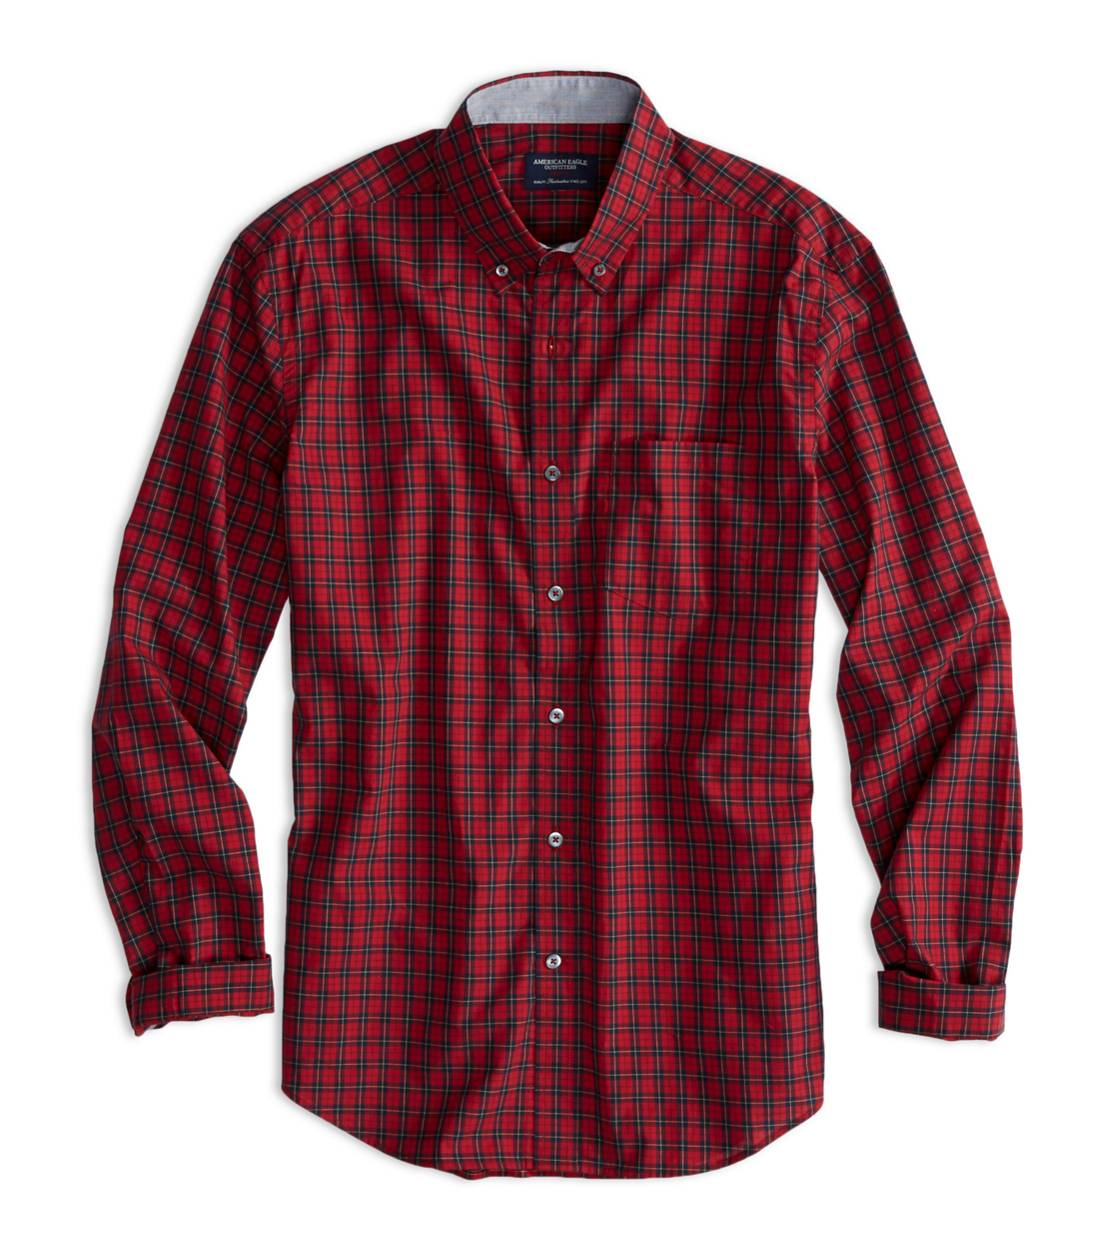 Red Cord AE Plaid Button Down Shirt